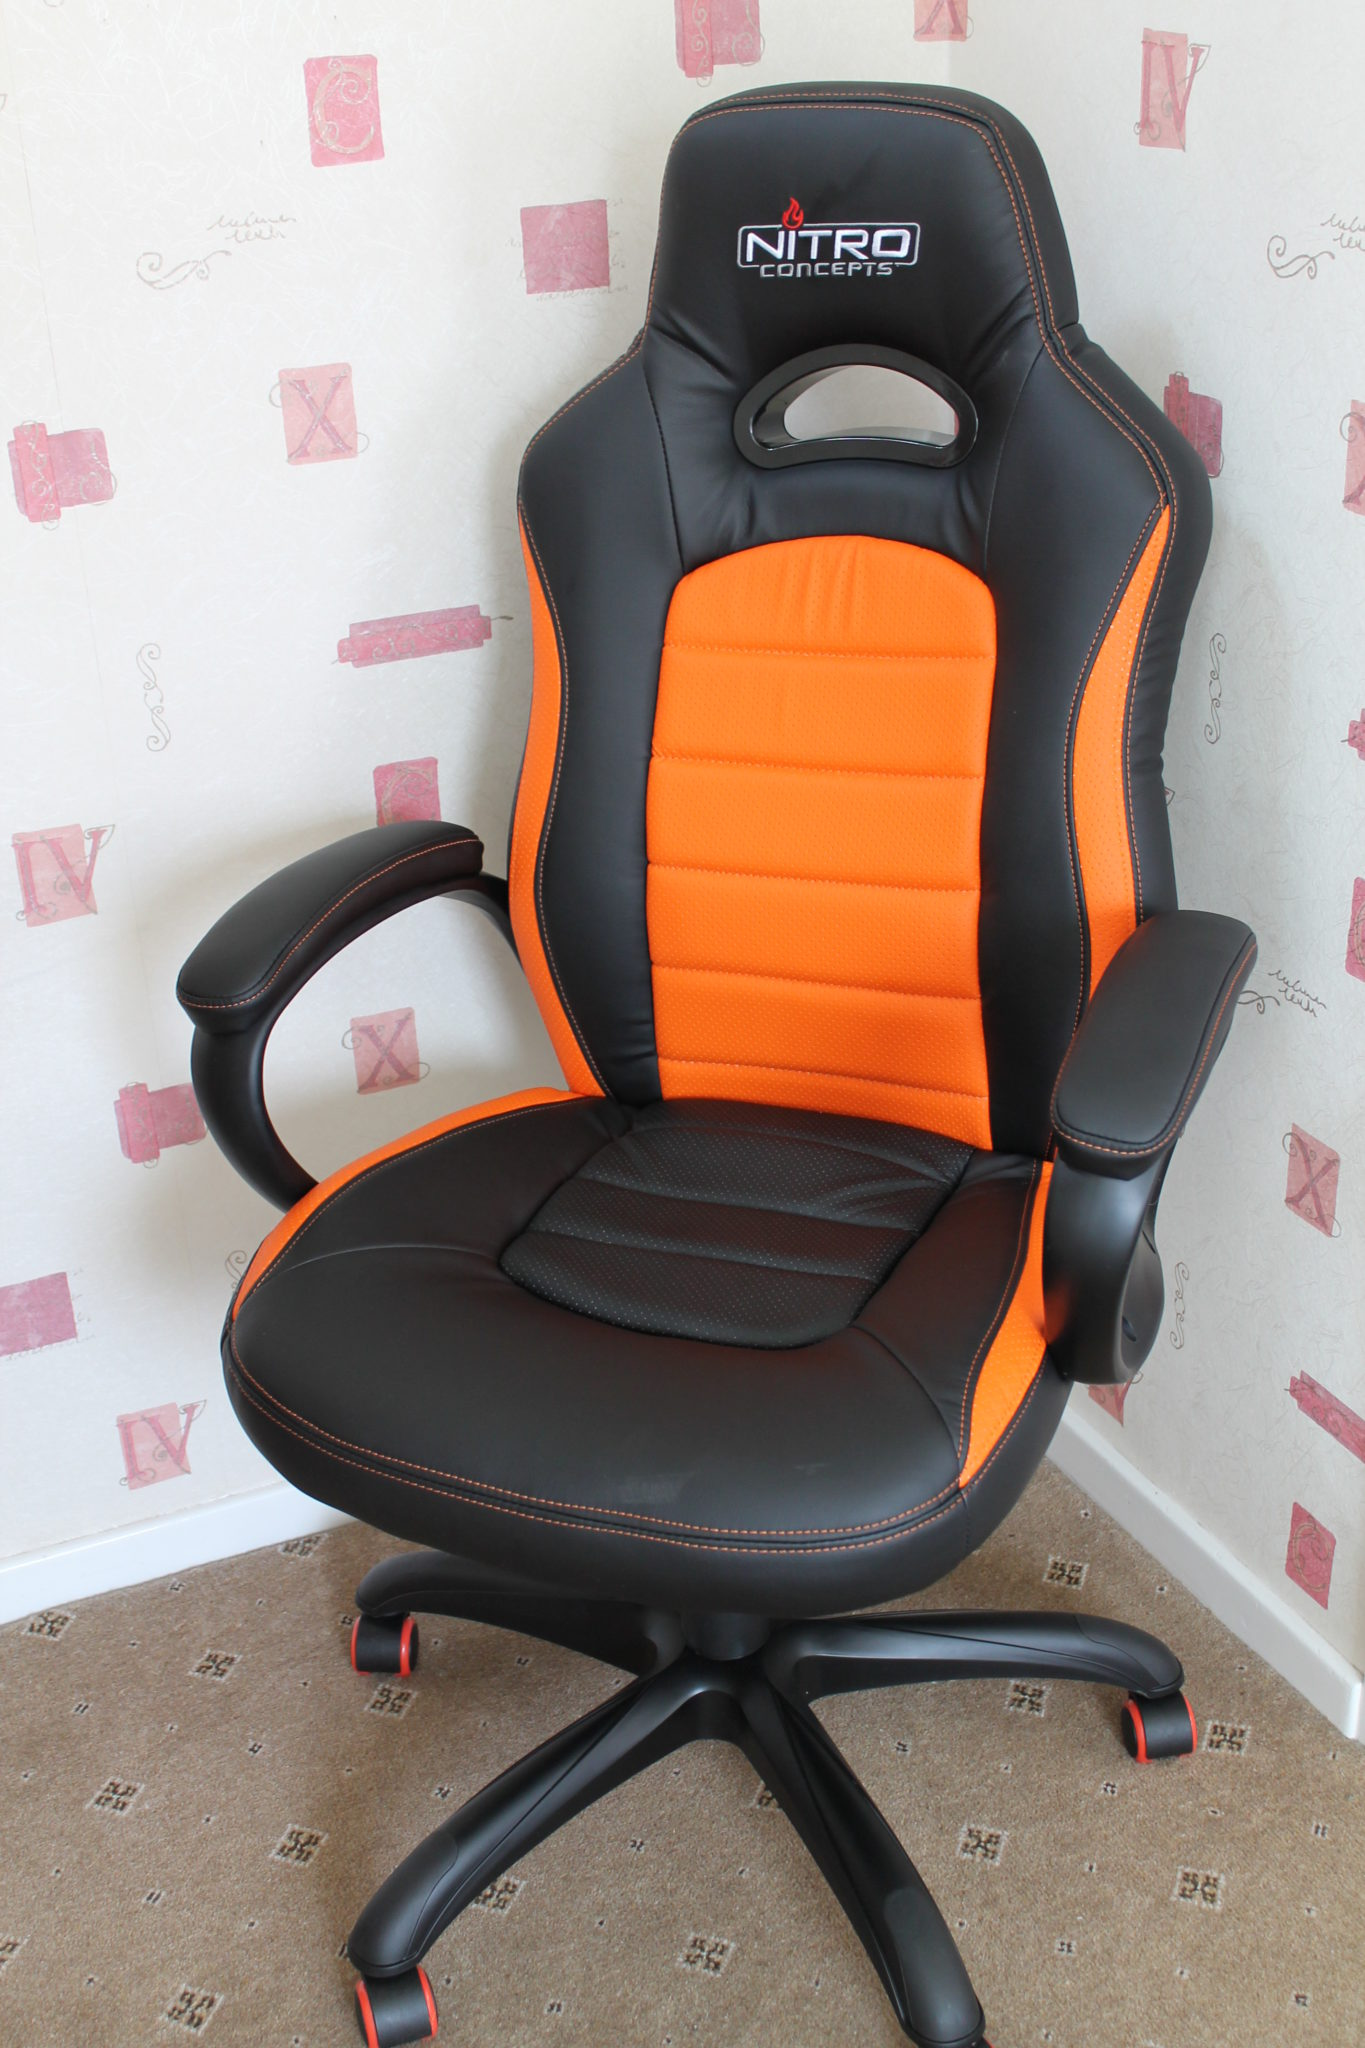 Nitro Concepts C80 Pure Series Gaming Chair Review Play3r